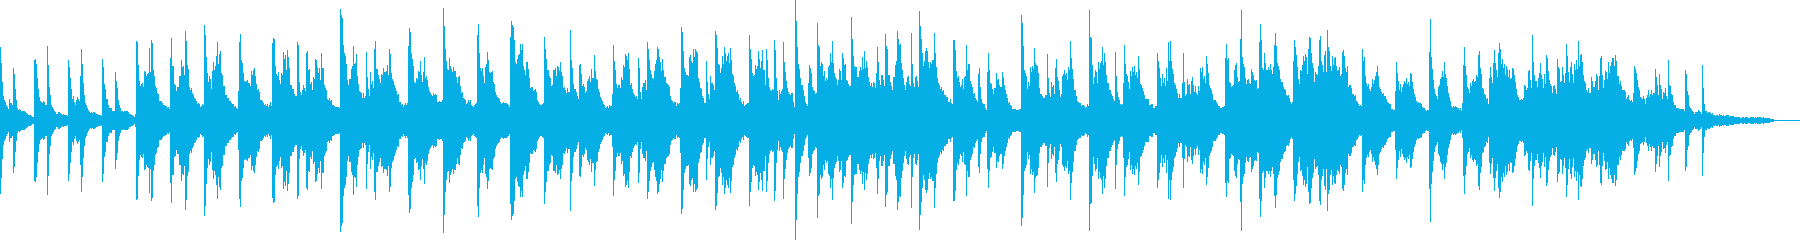 The height of humidity of piano solo and rainy day's reproduced waveform